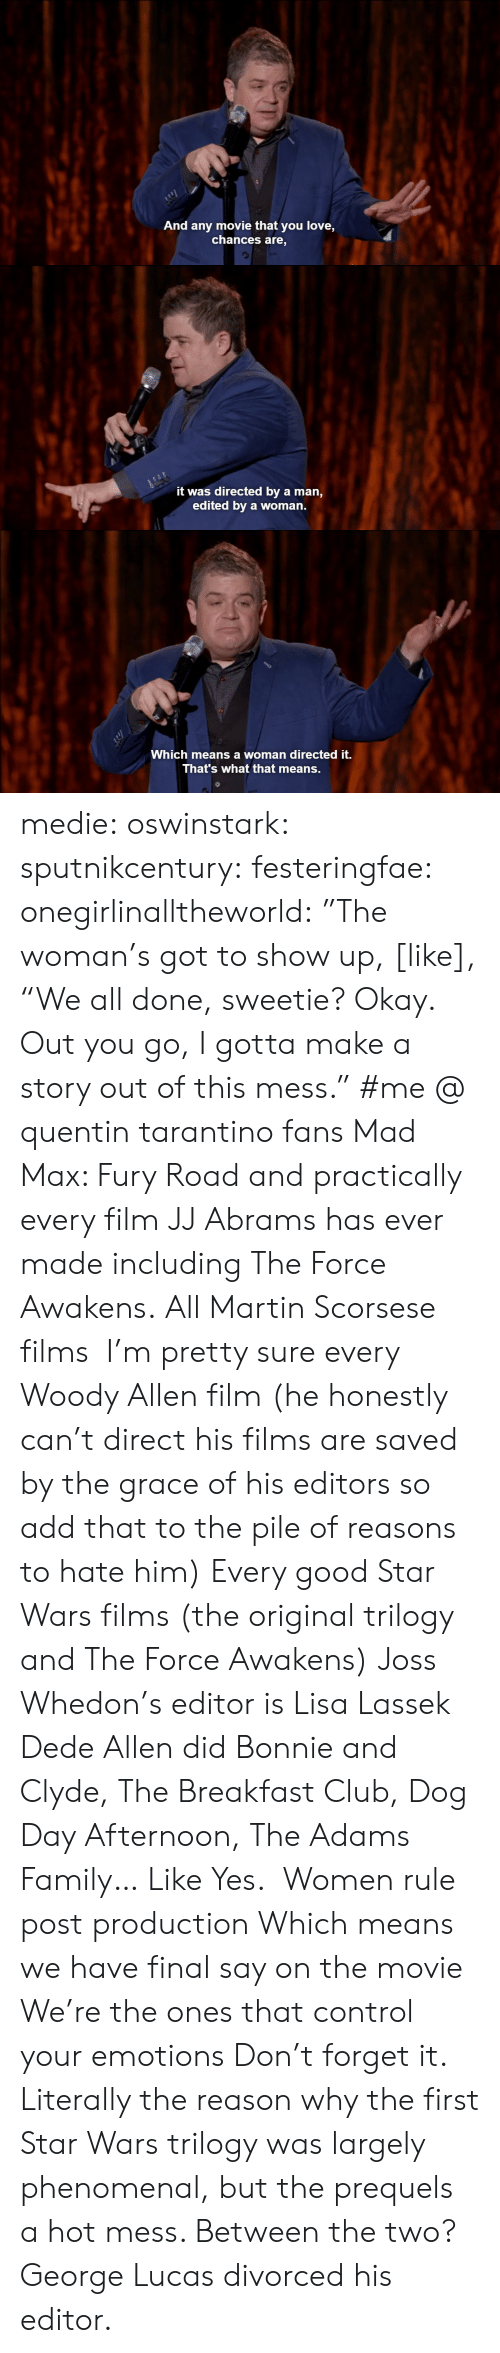 "Dog Day: And any movie that you love,  chances are,   it was directed by a man,  edited by a woman.   c-  Which means a woman directed it.  That's what that means. medie:   oswinstark:  sputnikcentury:  festeringfae:  onegirlinalltheworld:  ""The woman's got to show up, [like], ""We all done, sweetie? Okay. Out you go, I gotta make a story out of this mess.""  #me @ quentin tarantino fans  Mad Max: Fury Road and practically every film JJ Abrams has ever made including The Force Awakens.  All Martin Scorsese films  I'm pretty sure every Woody Allen film (he honestly can't direct his films are saved by the grace of his editors so add that to the pile of reasons to hate him) Every good Star Wars films (the original trilogy and The Force Awakens) Joss Whedon's editor is Lisa Lassek Dede Allen did Bonnie and Clyde, The Breakfast Club, Dog Day Afternoon, The Adams Family… Like Yes.  Women rule post production Which means we have final say on the movie We're the ones that control your emotions Don't forget it.  Literally the reason why the first Star Wars trilogy was largely phenomenal, but the prequels a hot mess.  Between the two? George Lucas divorced his editor."